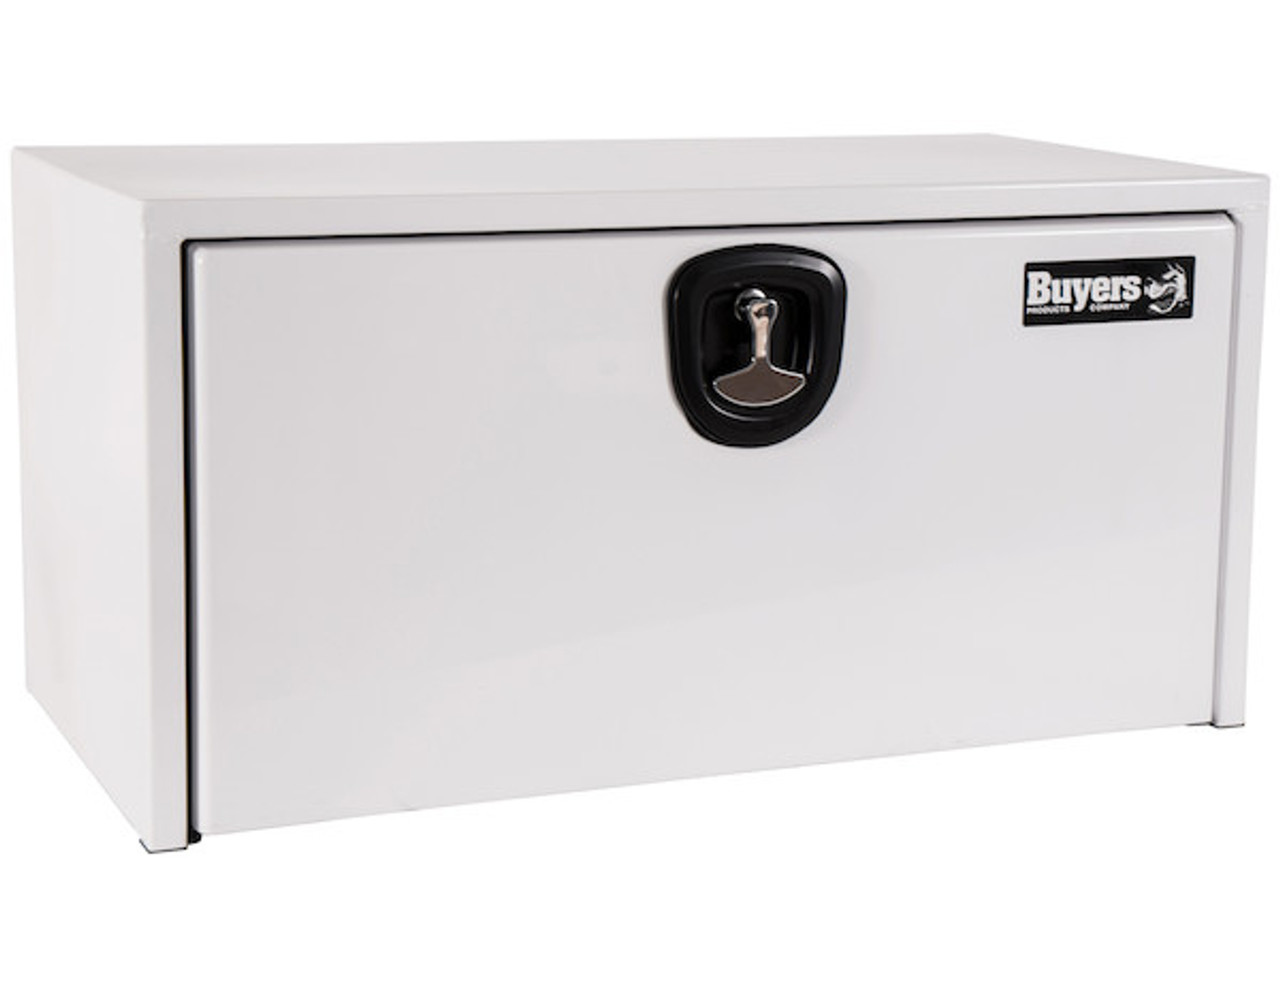 """1734400 BUYERS PRODUCTS WHITE STEEL UNDERBODY TRUCK TOOLBOX WITH 3-POINT LATCH 24""""Hx24""""Dx24""""W"""